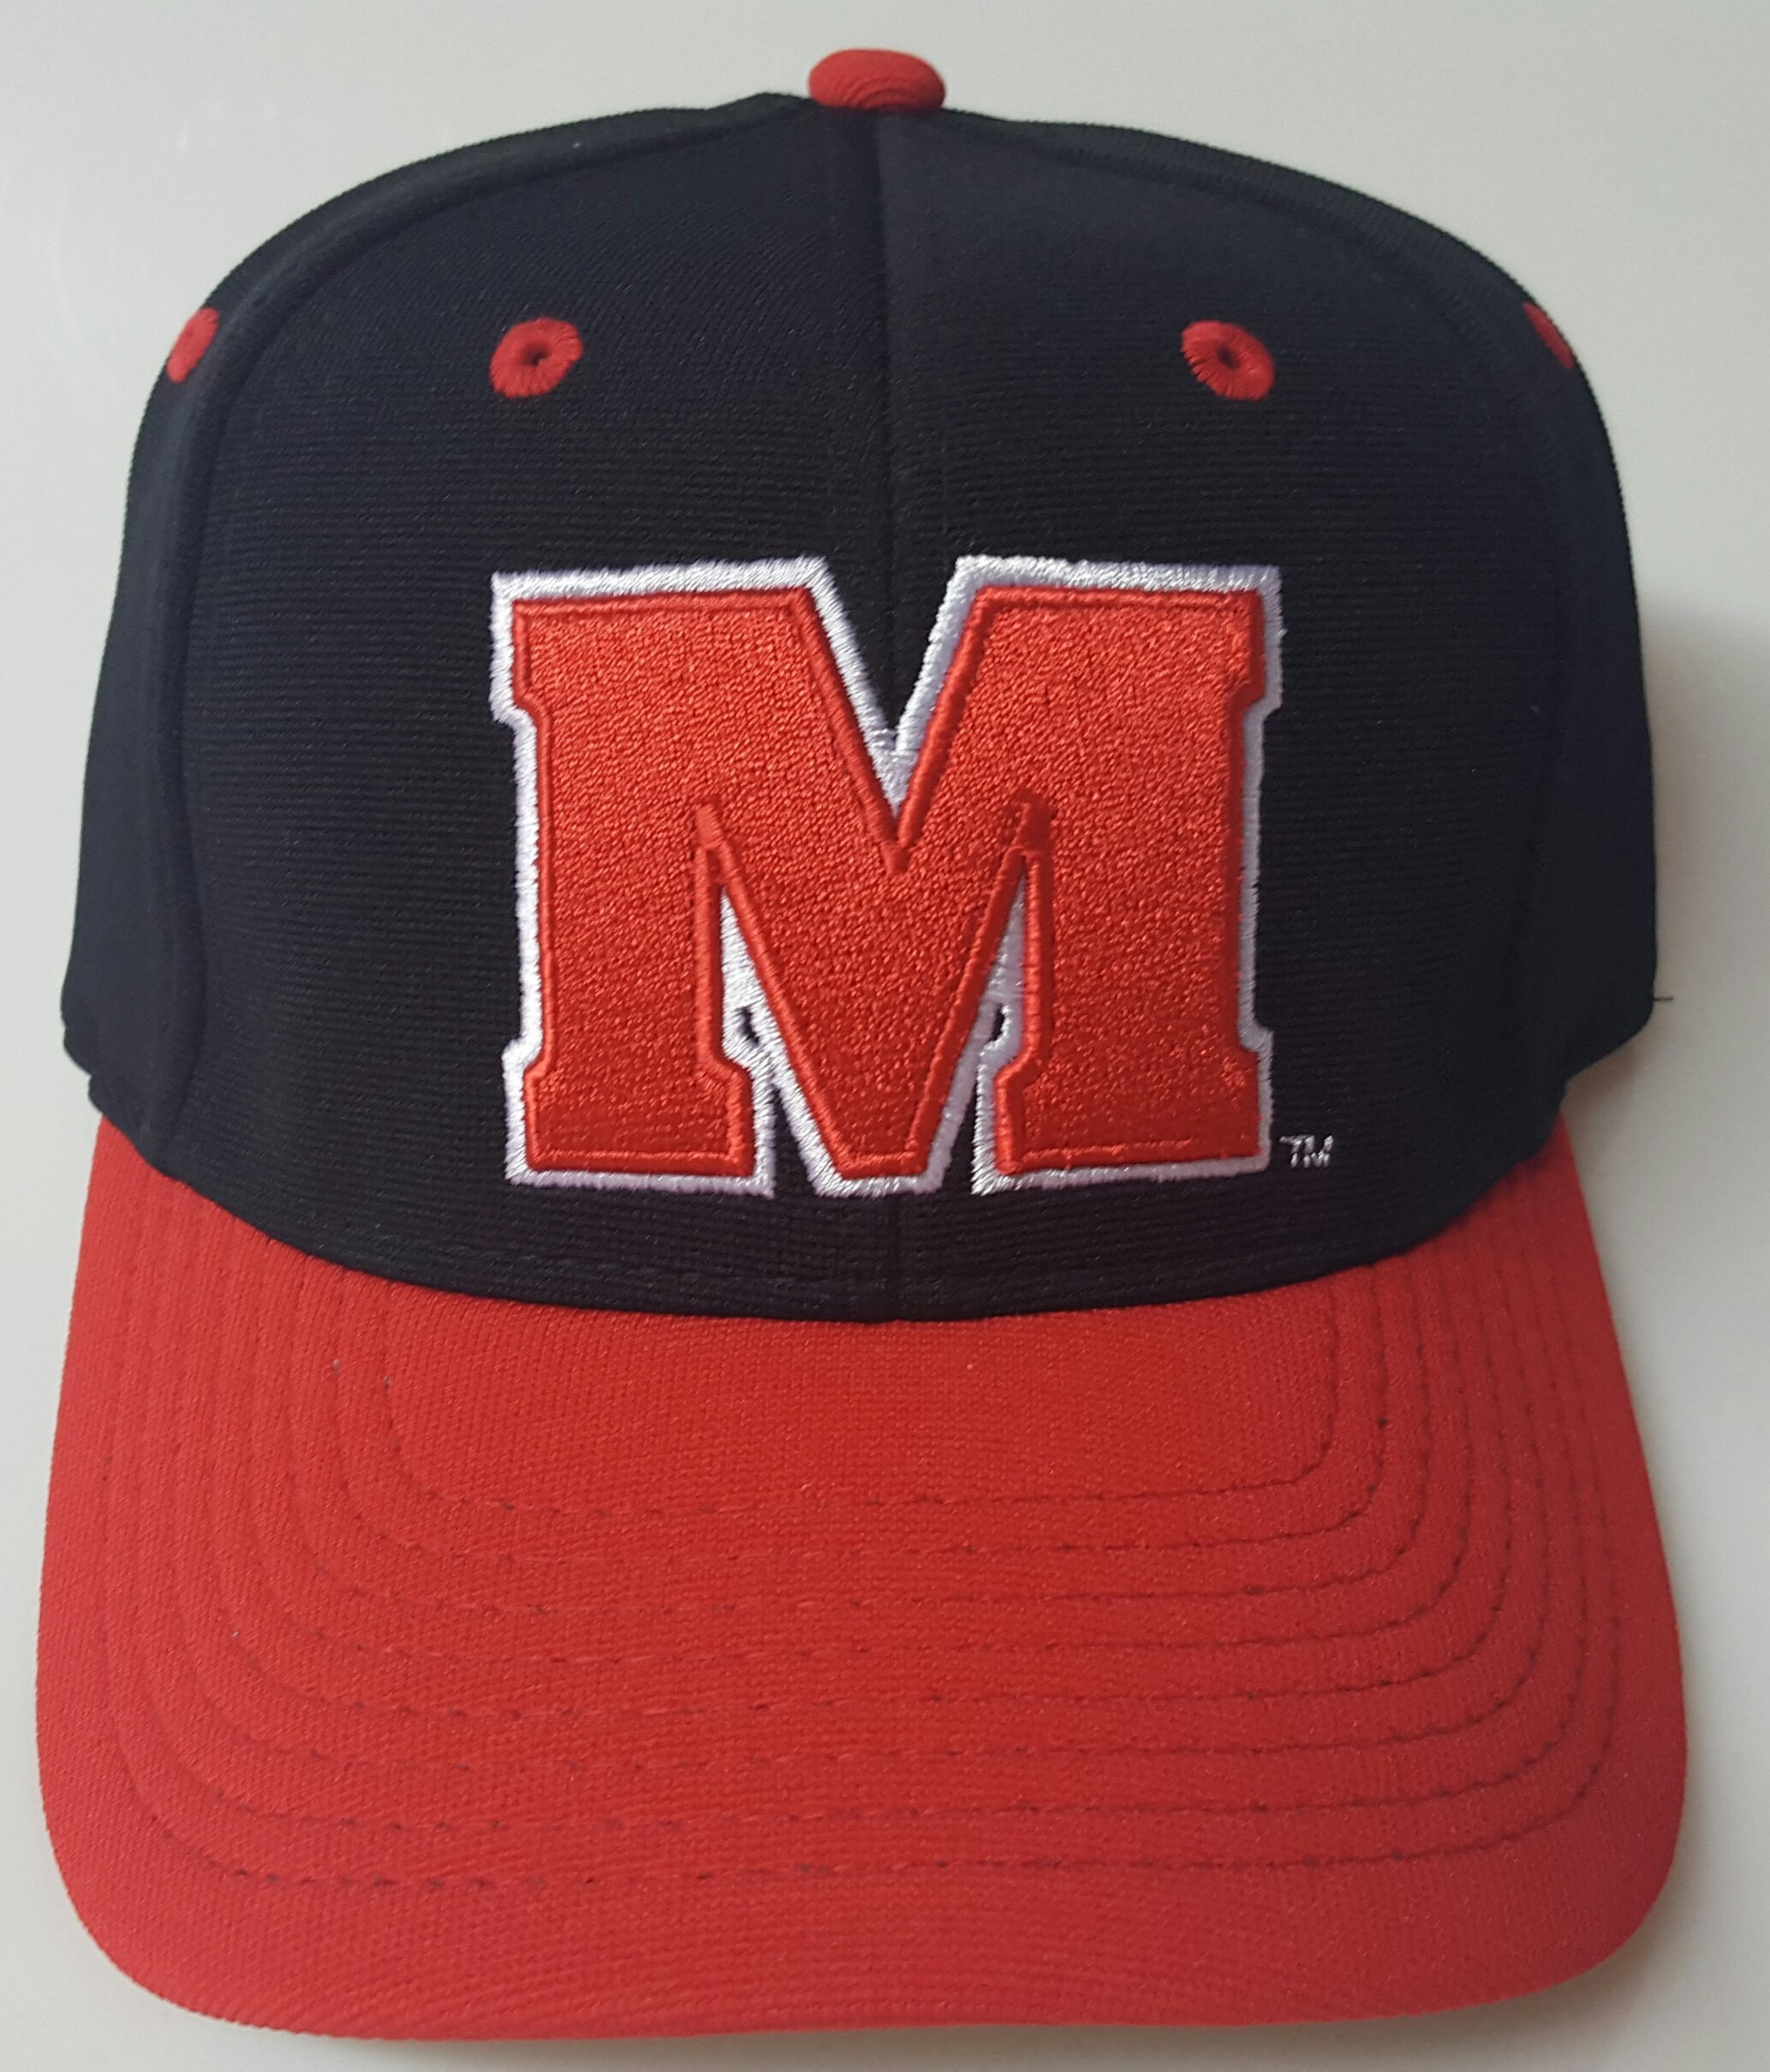 NCAA New Maryland Terps Embroidered Red & Black Velcro Cap